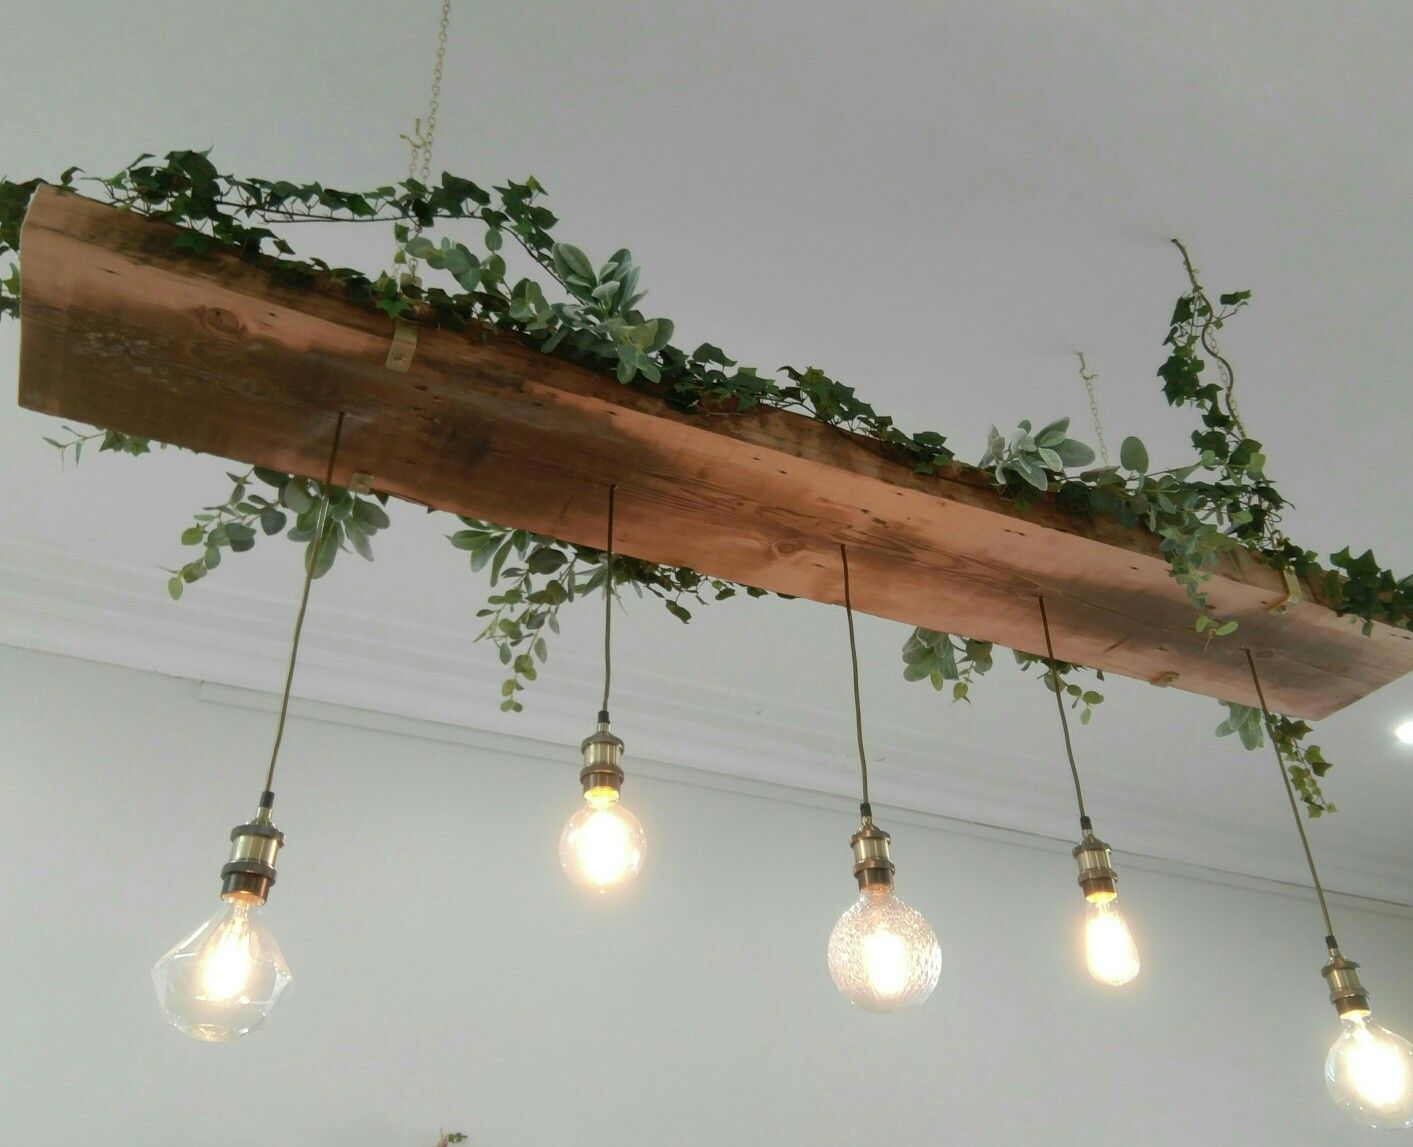 Recycled Timber Light Feature With Vintage Looking Led Lamps And Greenery Salon Interior Design Wood Light Fixture Recycle Timber